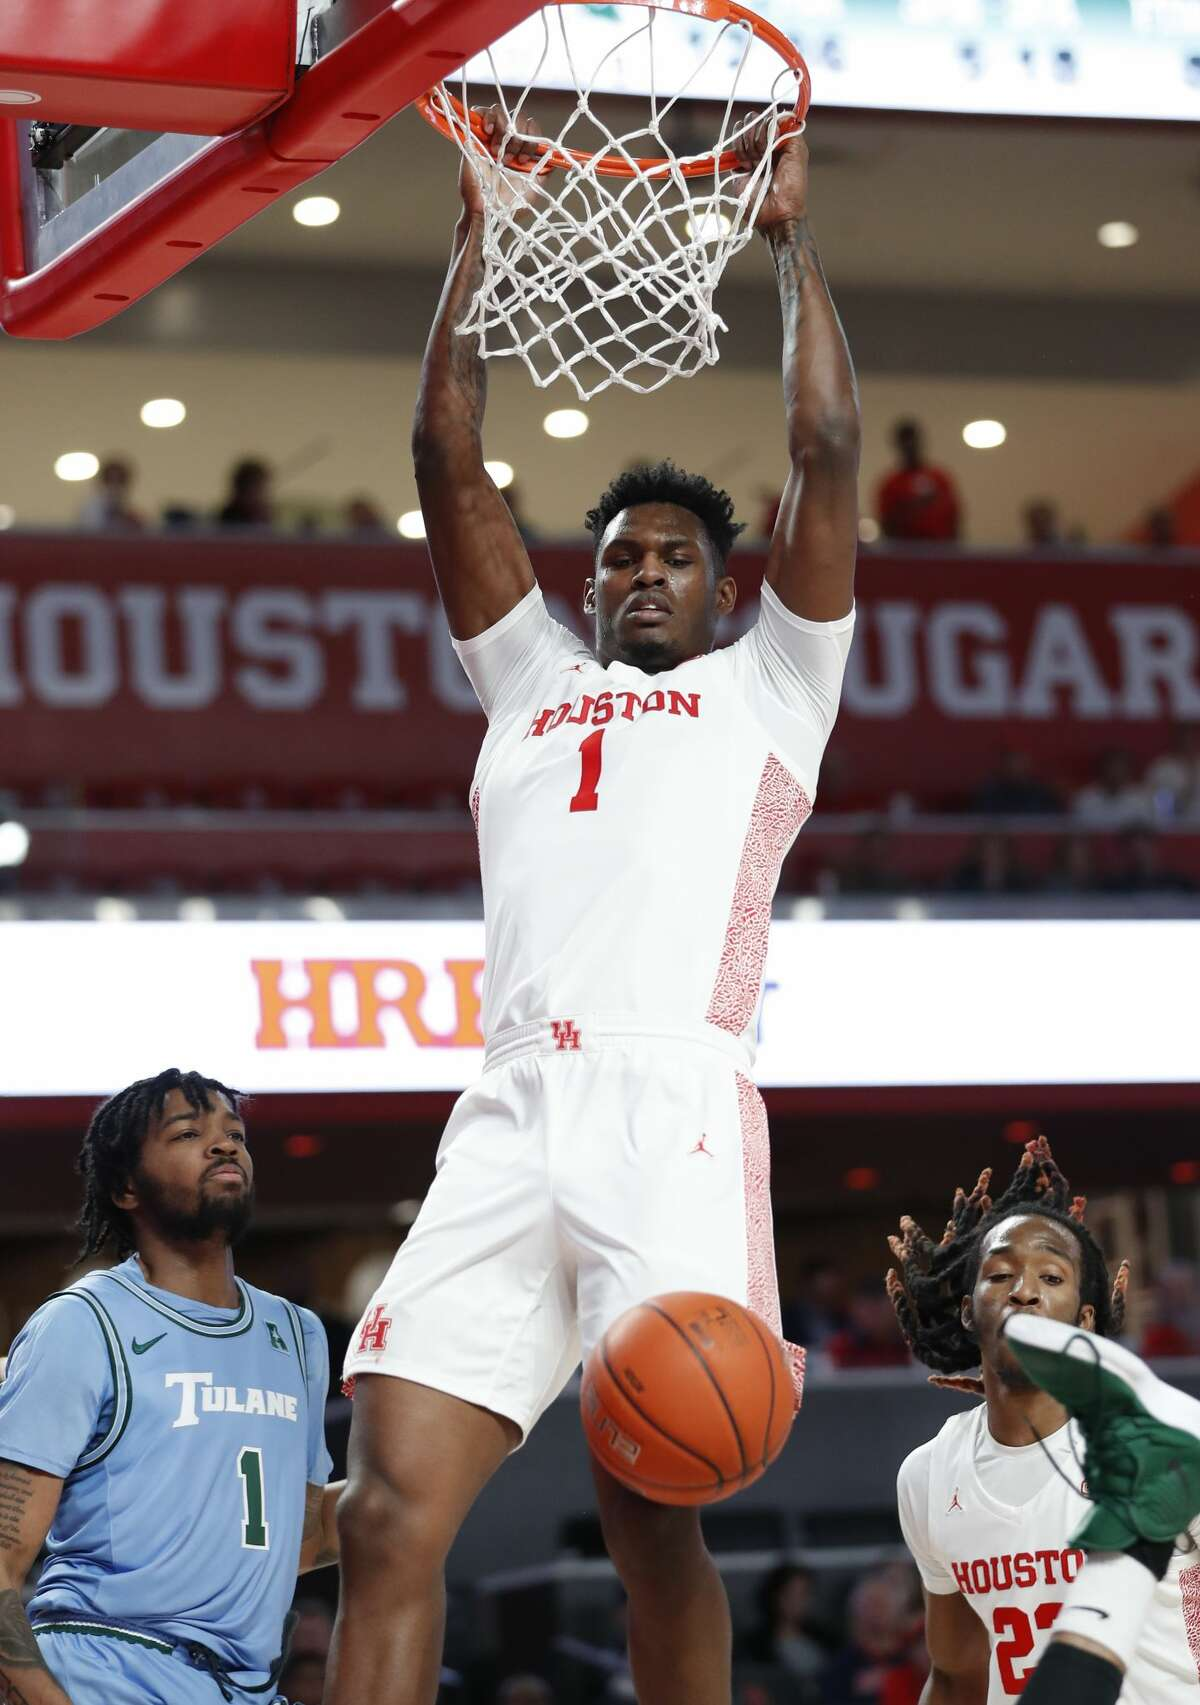 Houston Cougars center Chris Harris Jr. (1) dunks the ball against Tulane Green Wave during the second half of an NCAA Men's basketball game at the Fertitta Center, in Houston, Thursday, Feb. 6, 2020.